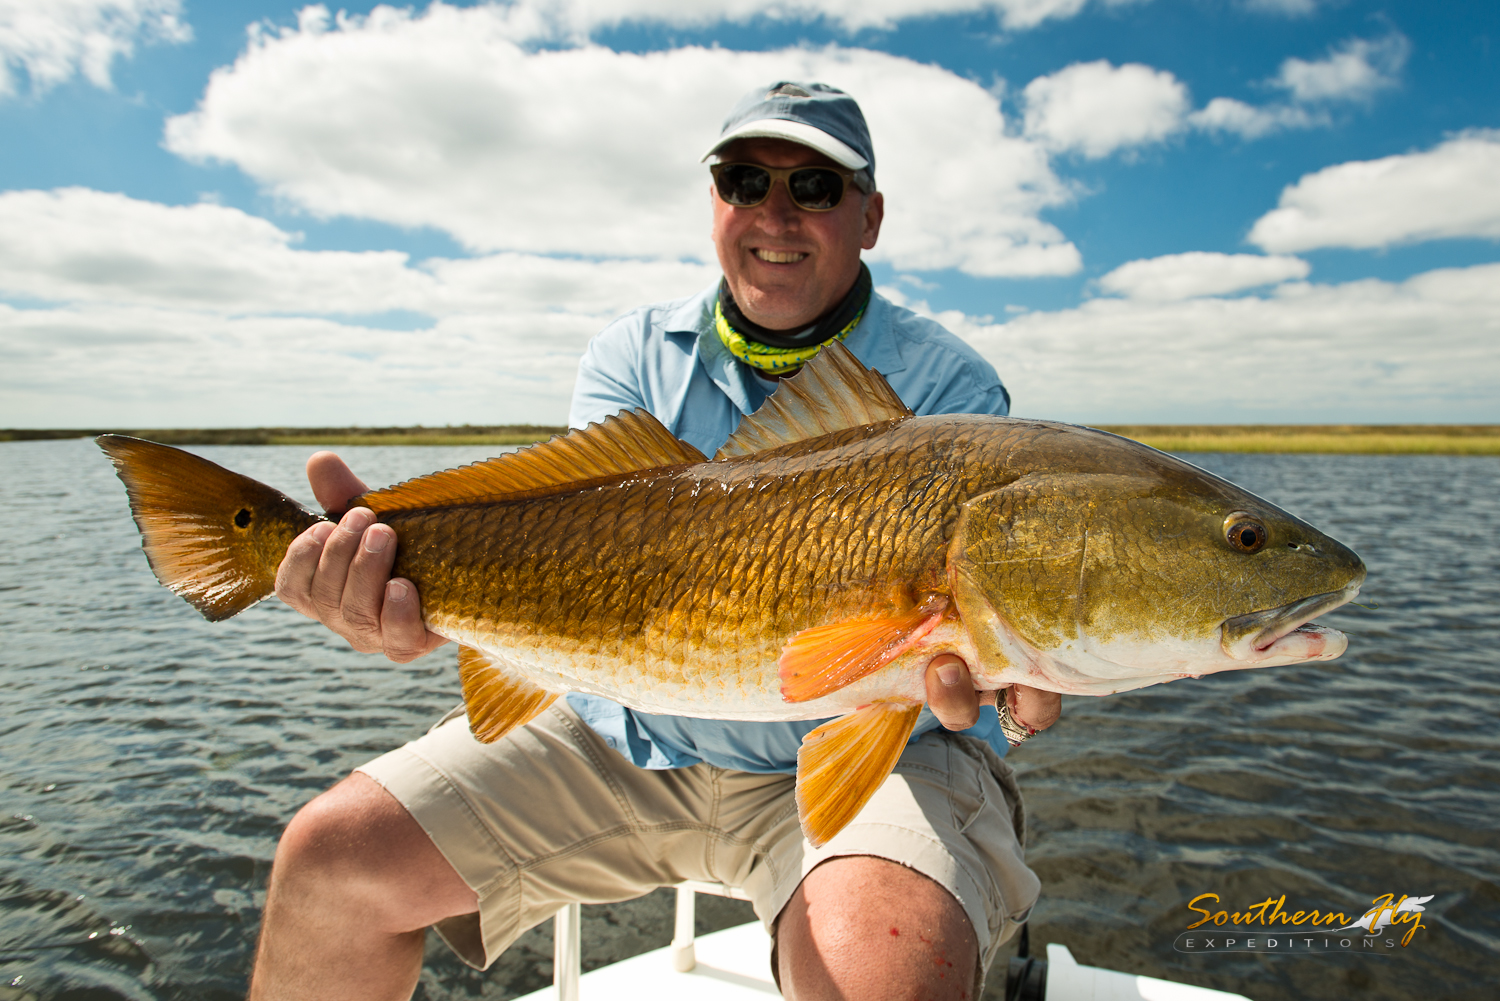 fly fishing charter new orleans la - fly fishing and light tackle guide Southern Fly Expeditions